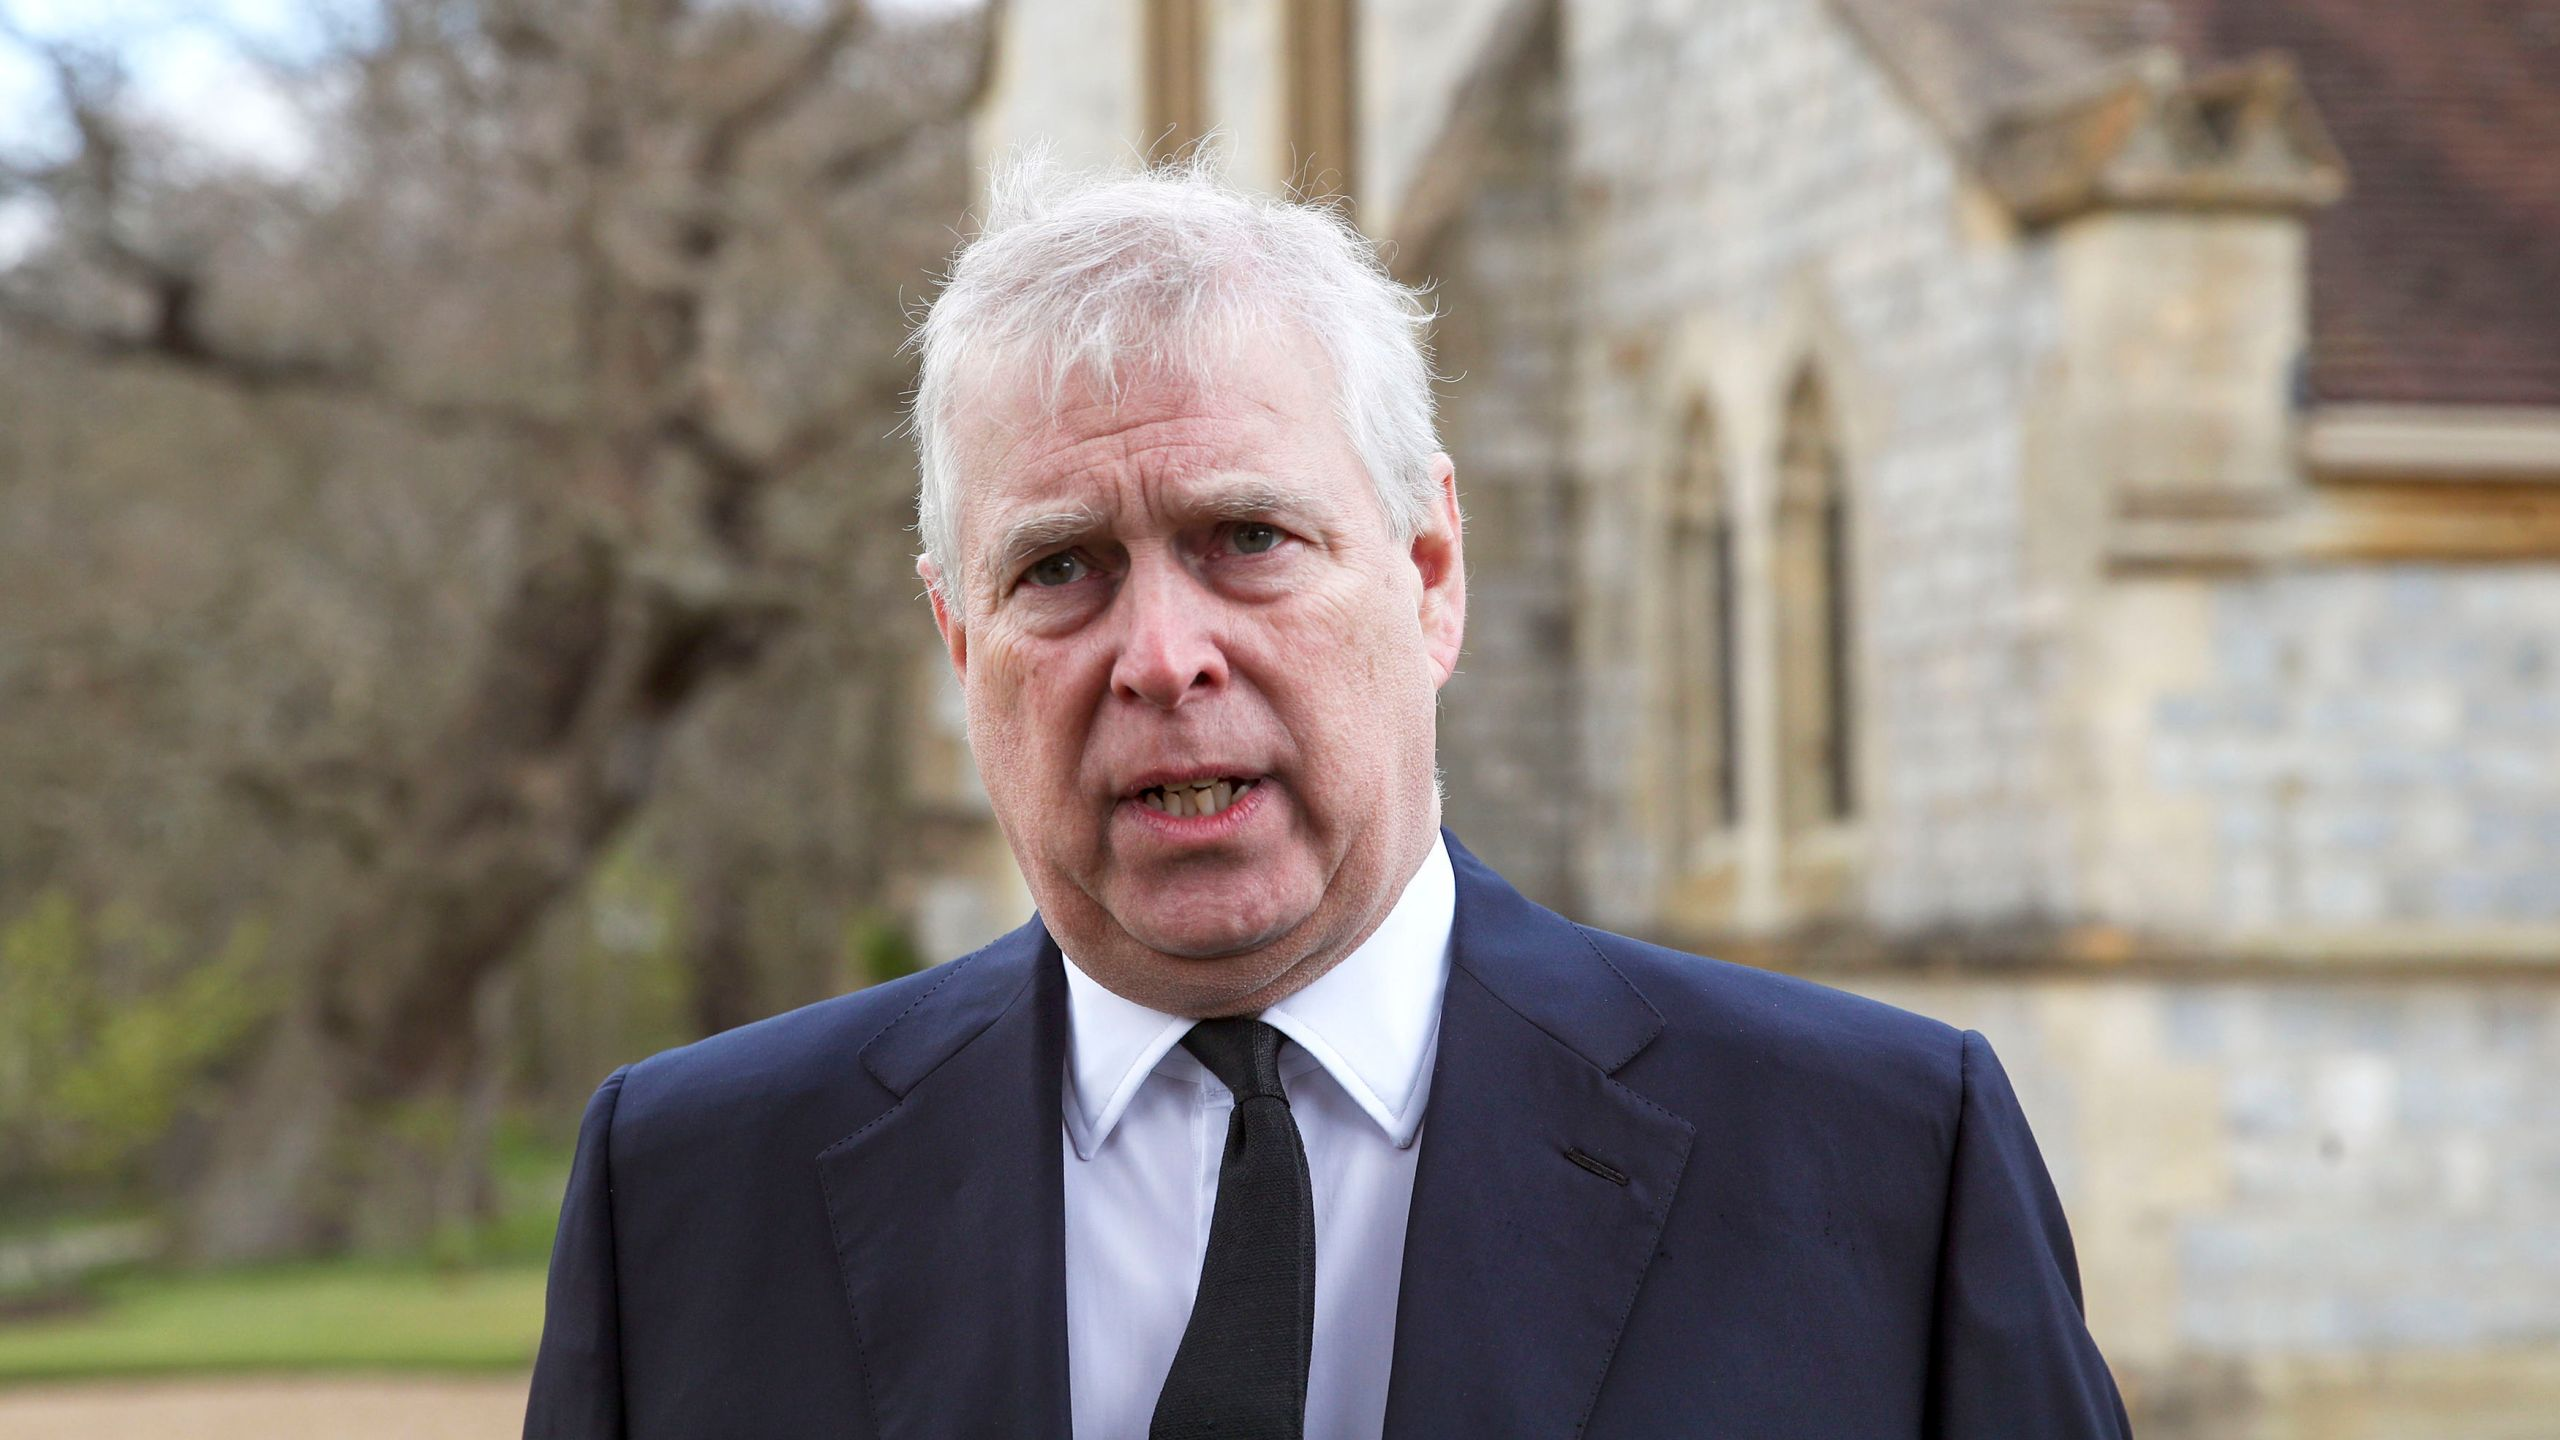 In this Sunday, April 11, 2021 file photo, Britain's Prince Andrew speaks during a television interview at the Royal Chapel of All Saints at Royal Lodge, Windsor, England. British police said Sunday, Oct. 10, 2021 that they will not be taking any further action against Prince Andrew after a review prompted by a Jeffrey Epstein accuser who claims that he sexually assaulted her. (Steve Parsons/Pool Photo via AP, File)